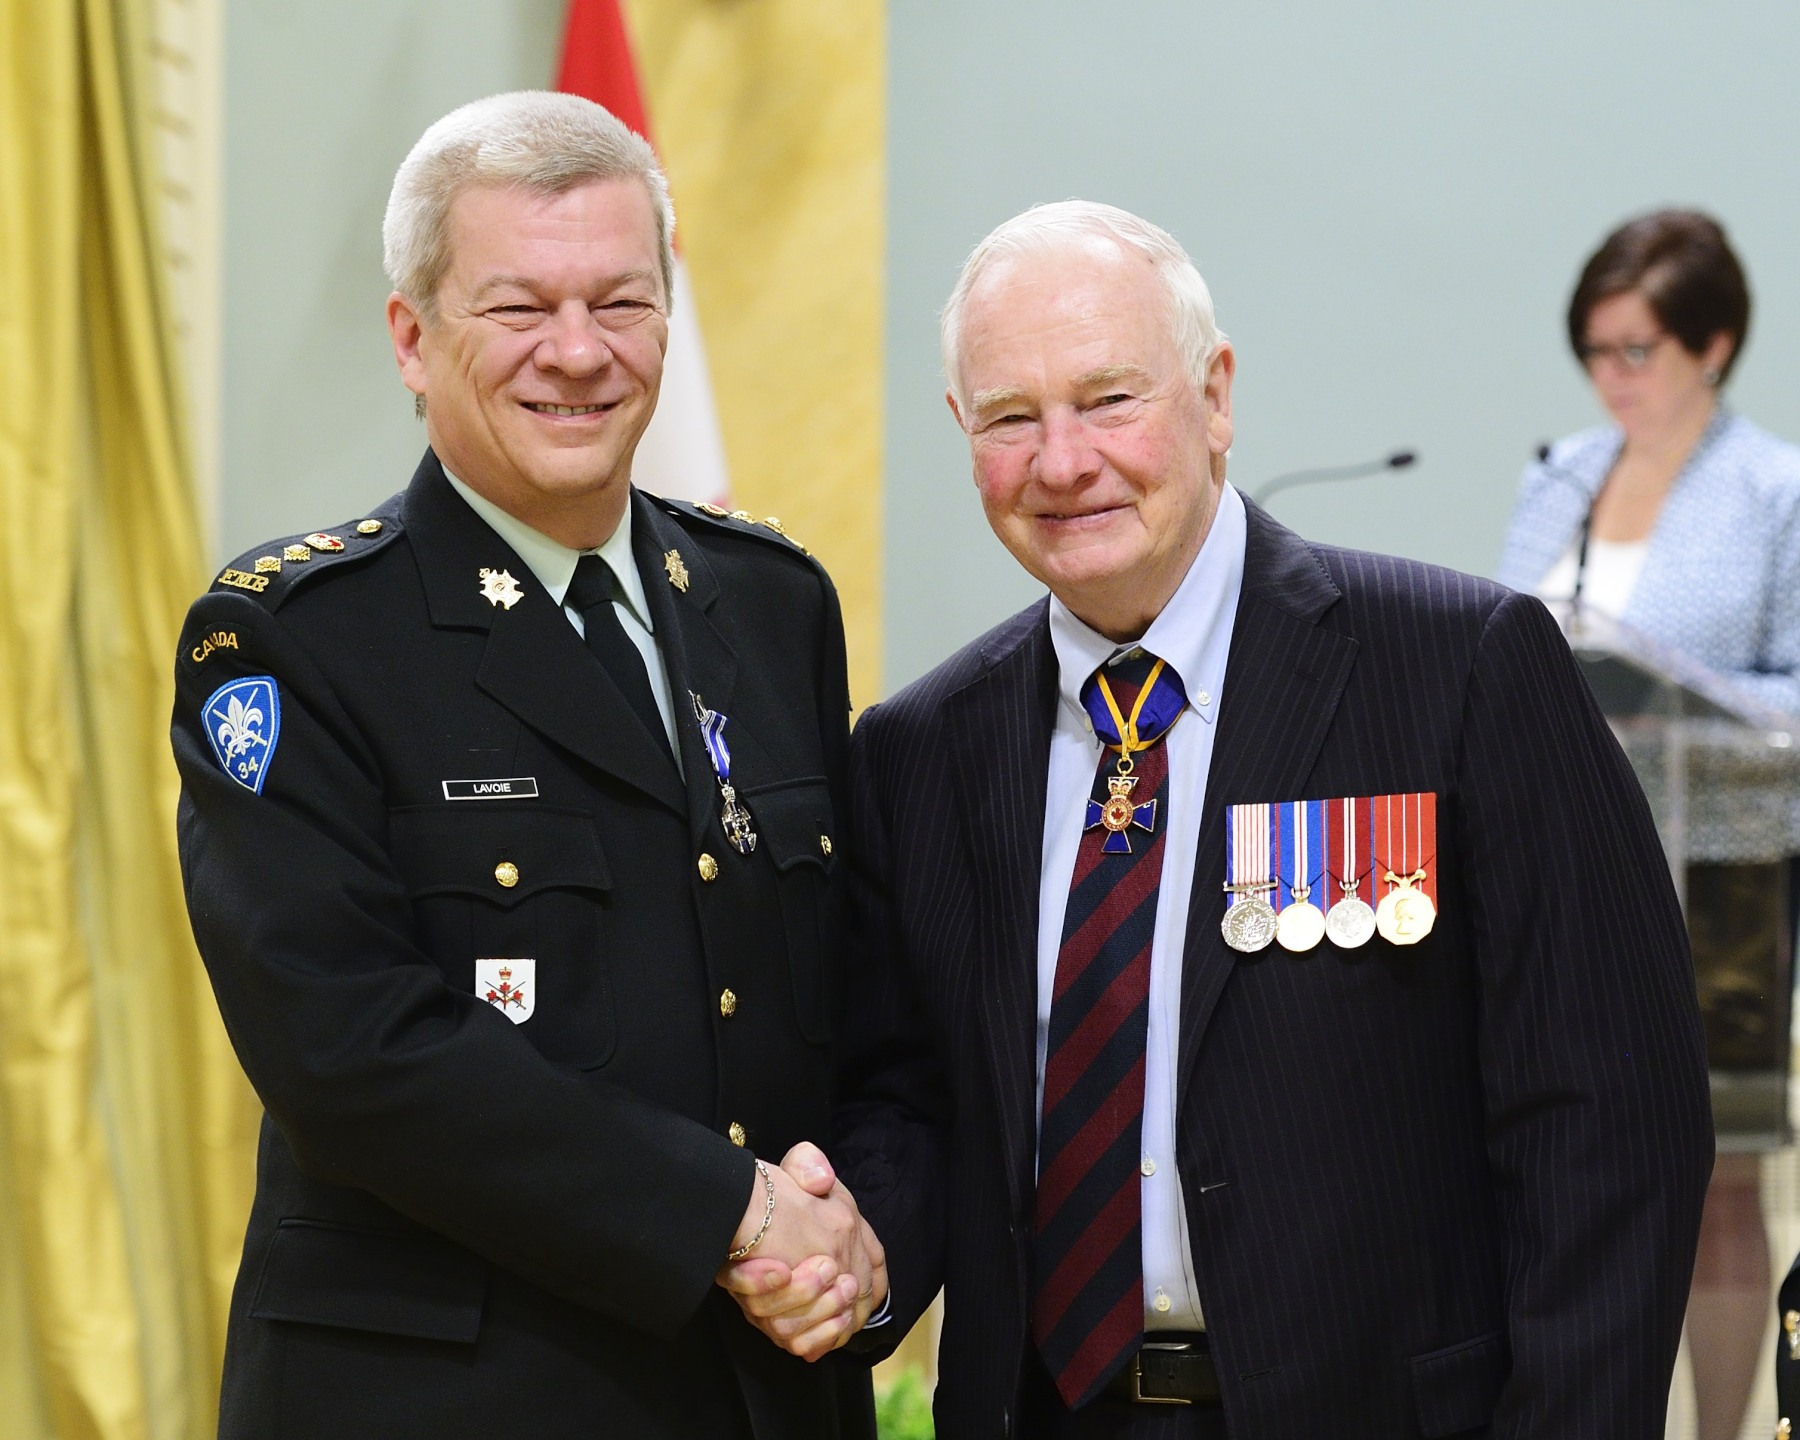 From January 2013 to October 2014, Honorary Lieutenant-Colonel Joseph Luc Lavoie, M.S.M. was actively involved in planning and orchestrating the media campaign and commemorative events marking the Royal 22e Régiment's centennial. He demonstrated outstanding leadership in creating the winning conditions in which to showcase the Canadian Armed Forces provincially, nationally and internationally as never before.